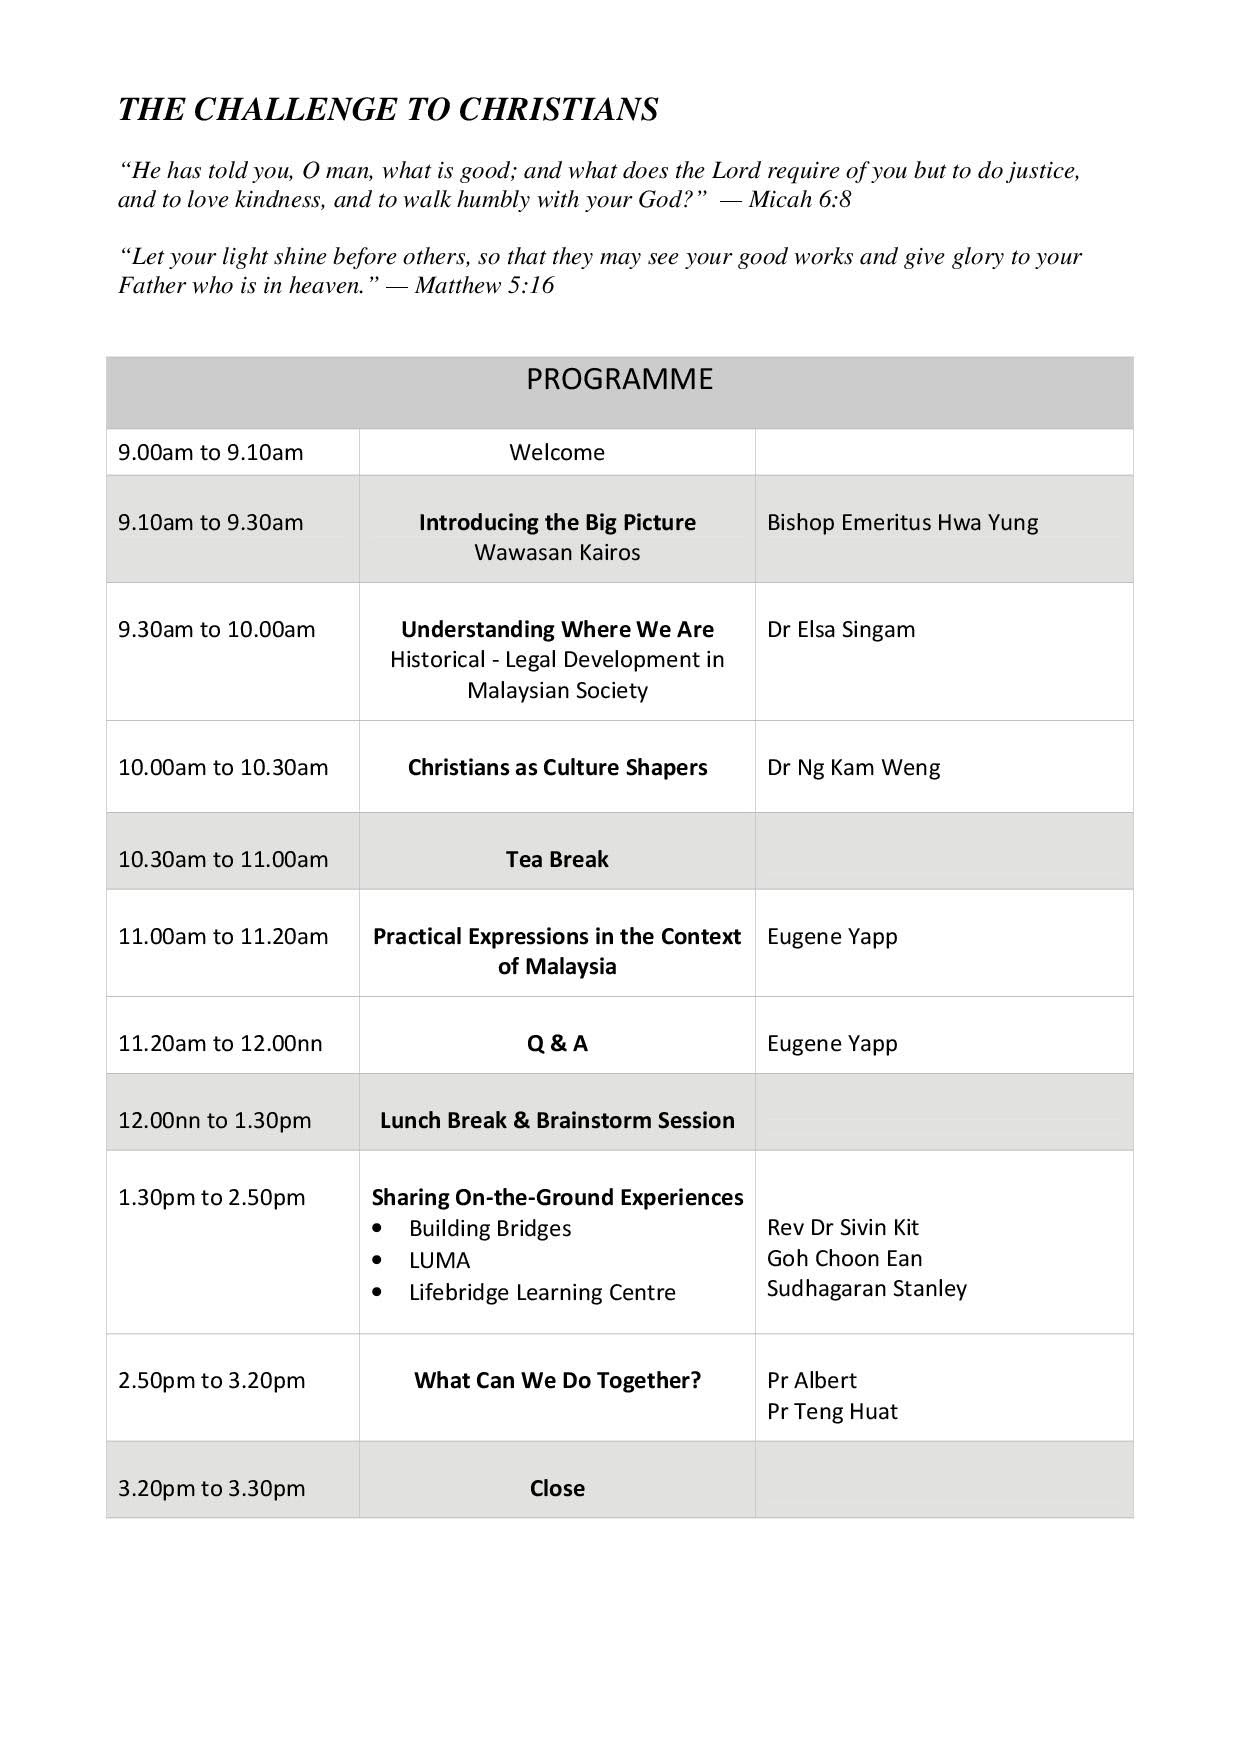 Schedule: The Challenge to Christians (Mic 6:8 and Mat 5:16), 9-9.10am Welcome, 9.10-9.30am Introducing the Big Picture, 9.30-10am Understanding Where We Are, 10-10.30am Christians as Culture Shapers, 10.30-11am Tea Break, 11-11.20am Practical Expressions in the Context of Malaysia, 11.20am-12nn Q & A, 12nn-1.30pm Lunch Break & Brainstorm Session, 1.30-2.50pm Sharing On-the-Ground Experiences, 2.50-3.20pm What Can We Do Together, 3.20-3.30pm Close